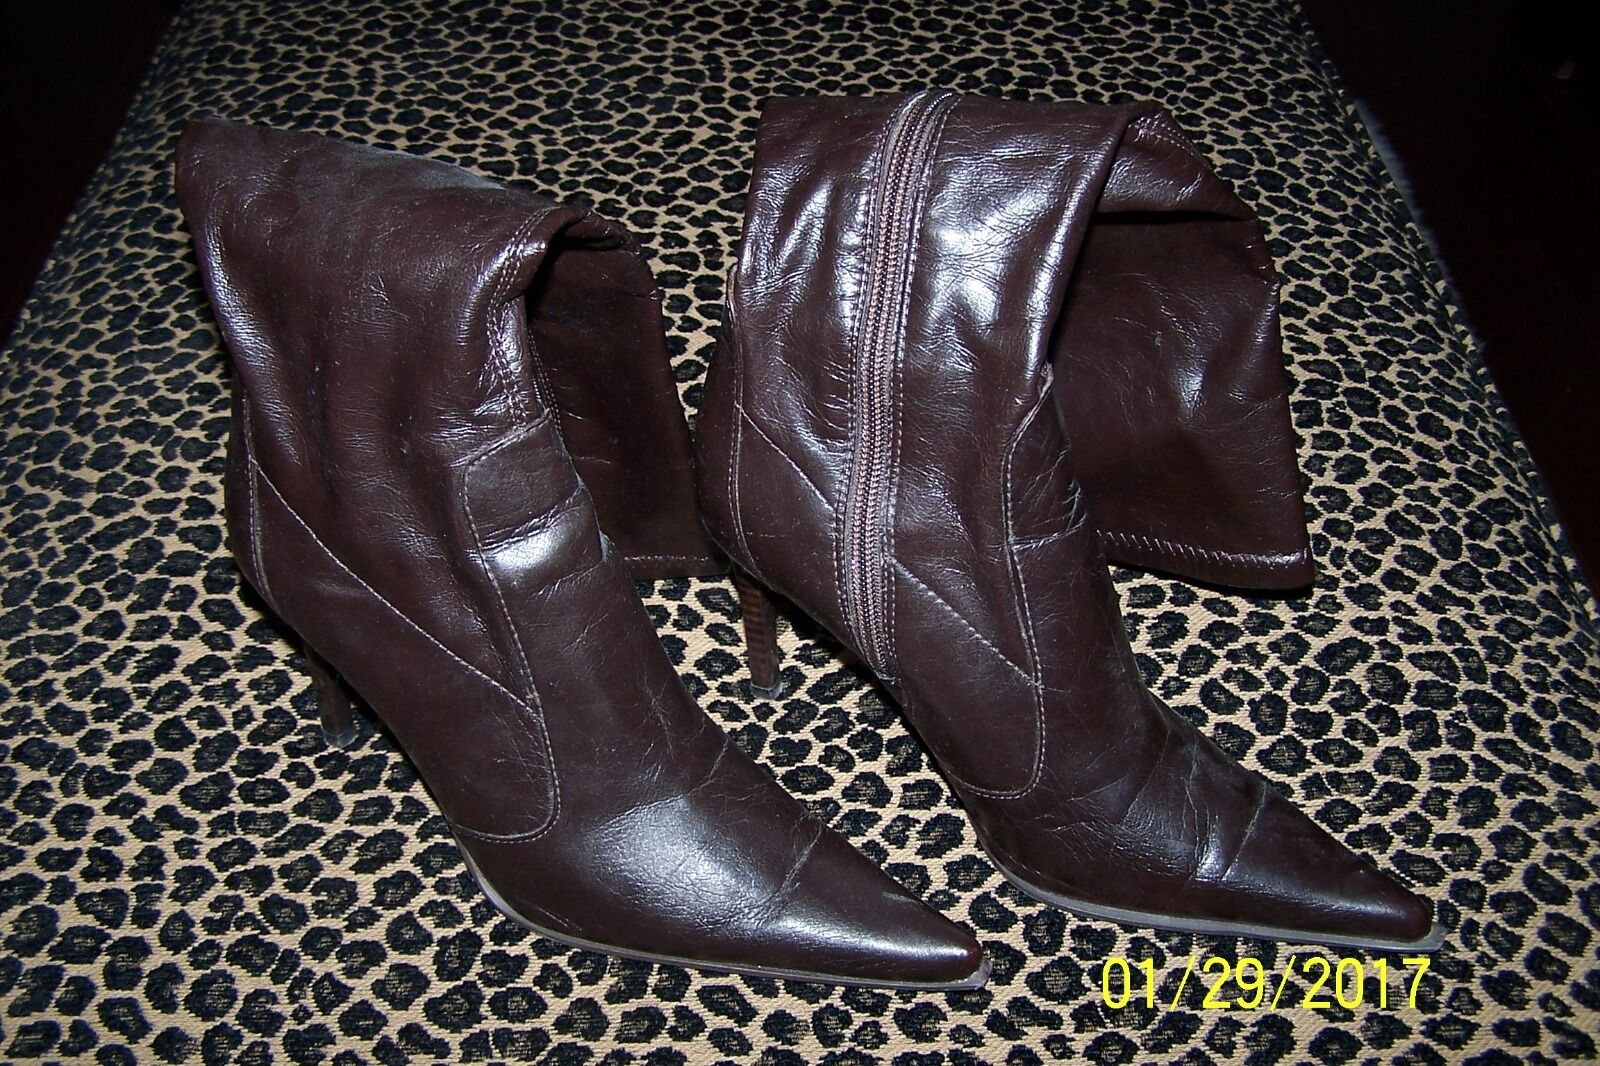 Aldo Brown High Heel Boots Worn Once 37 7